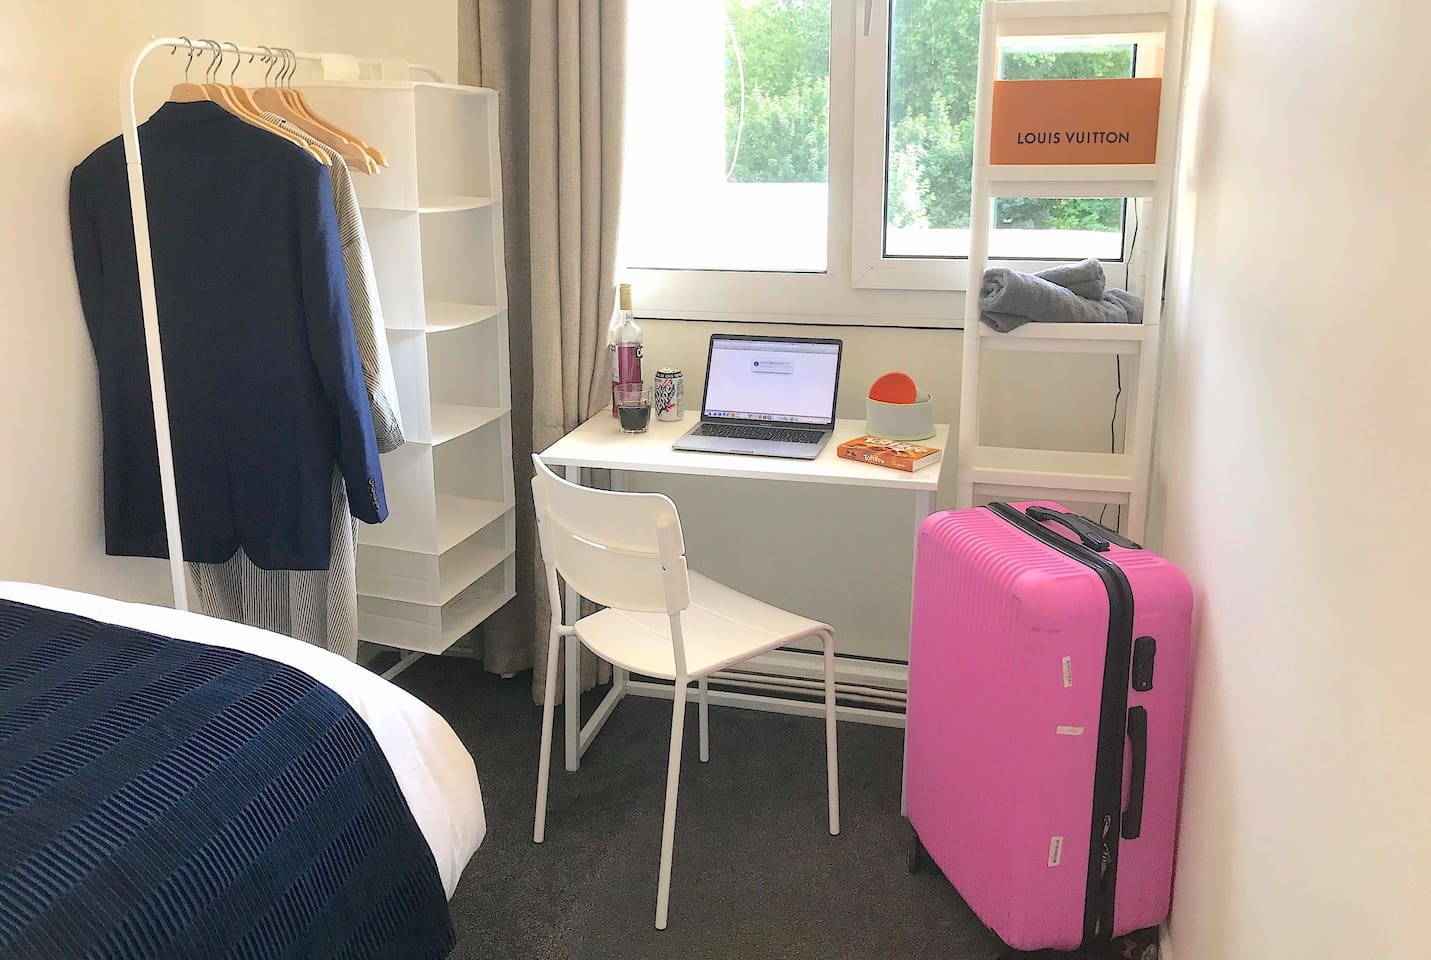 YOU'll LOVE IT ! Cosy room with green view just minutes from Oxford St, SoHo, Waterloo, LondonEye, St Thomas. Fully equipped kitchen with washer. Hairdryer, towels, linen are provided. BOOK NOW or you might be too late. It's BRAND NEW on airbnb !